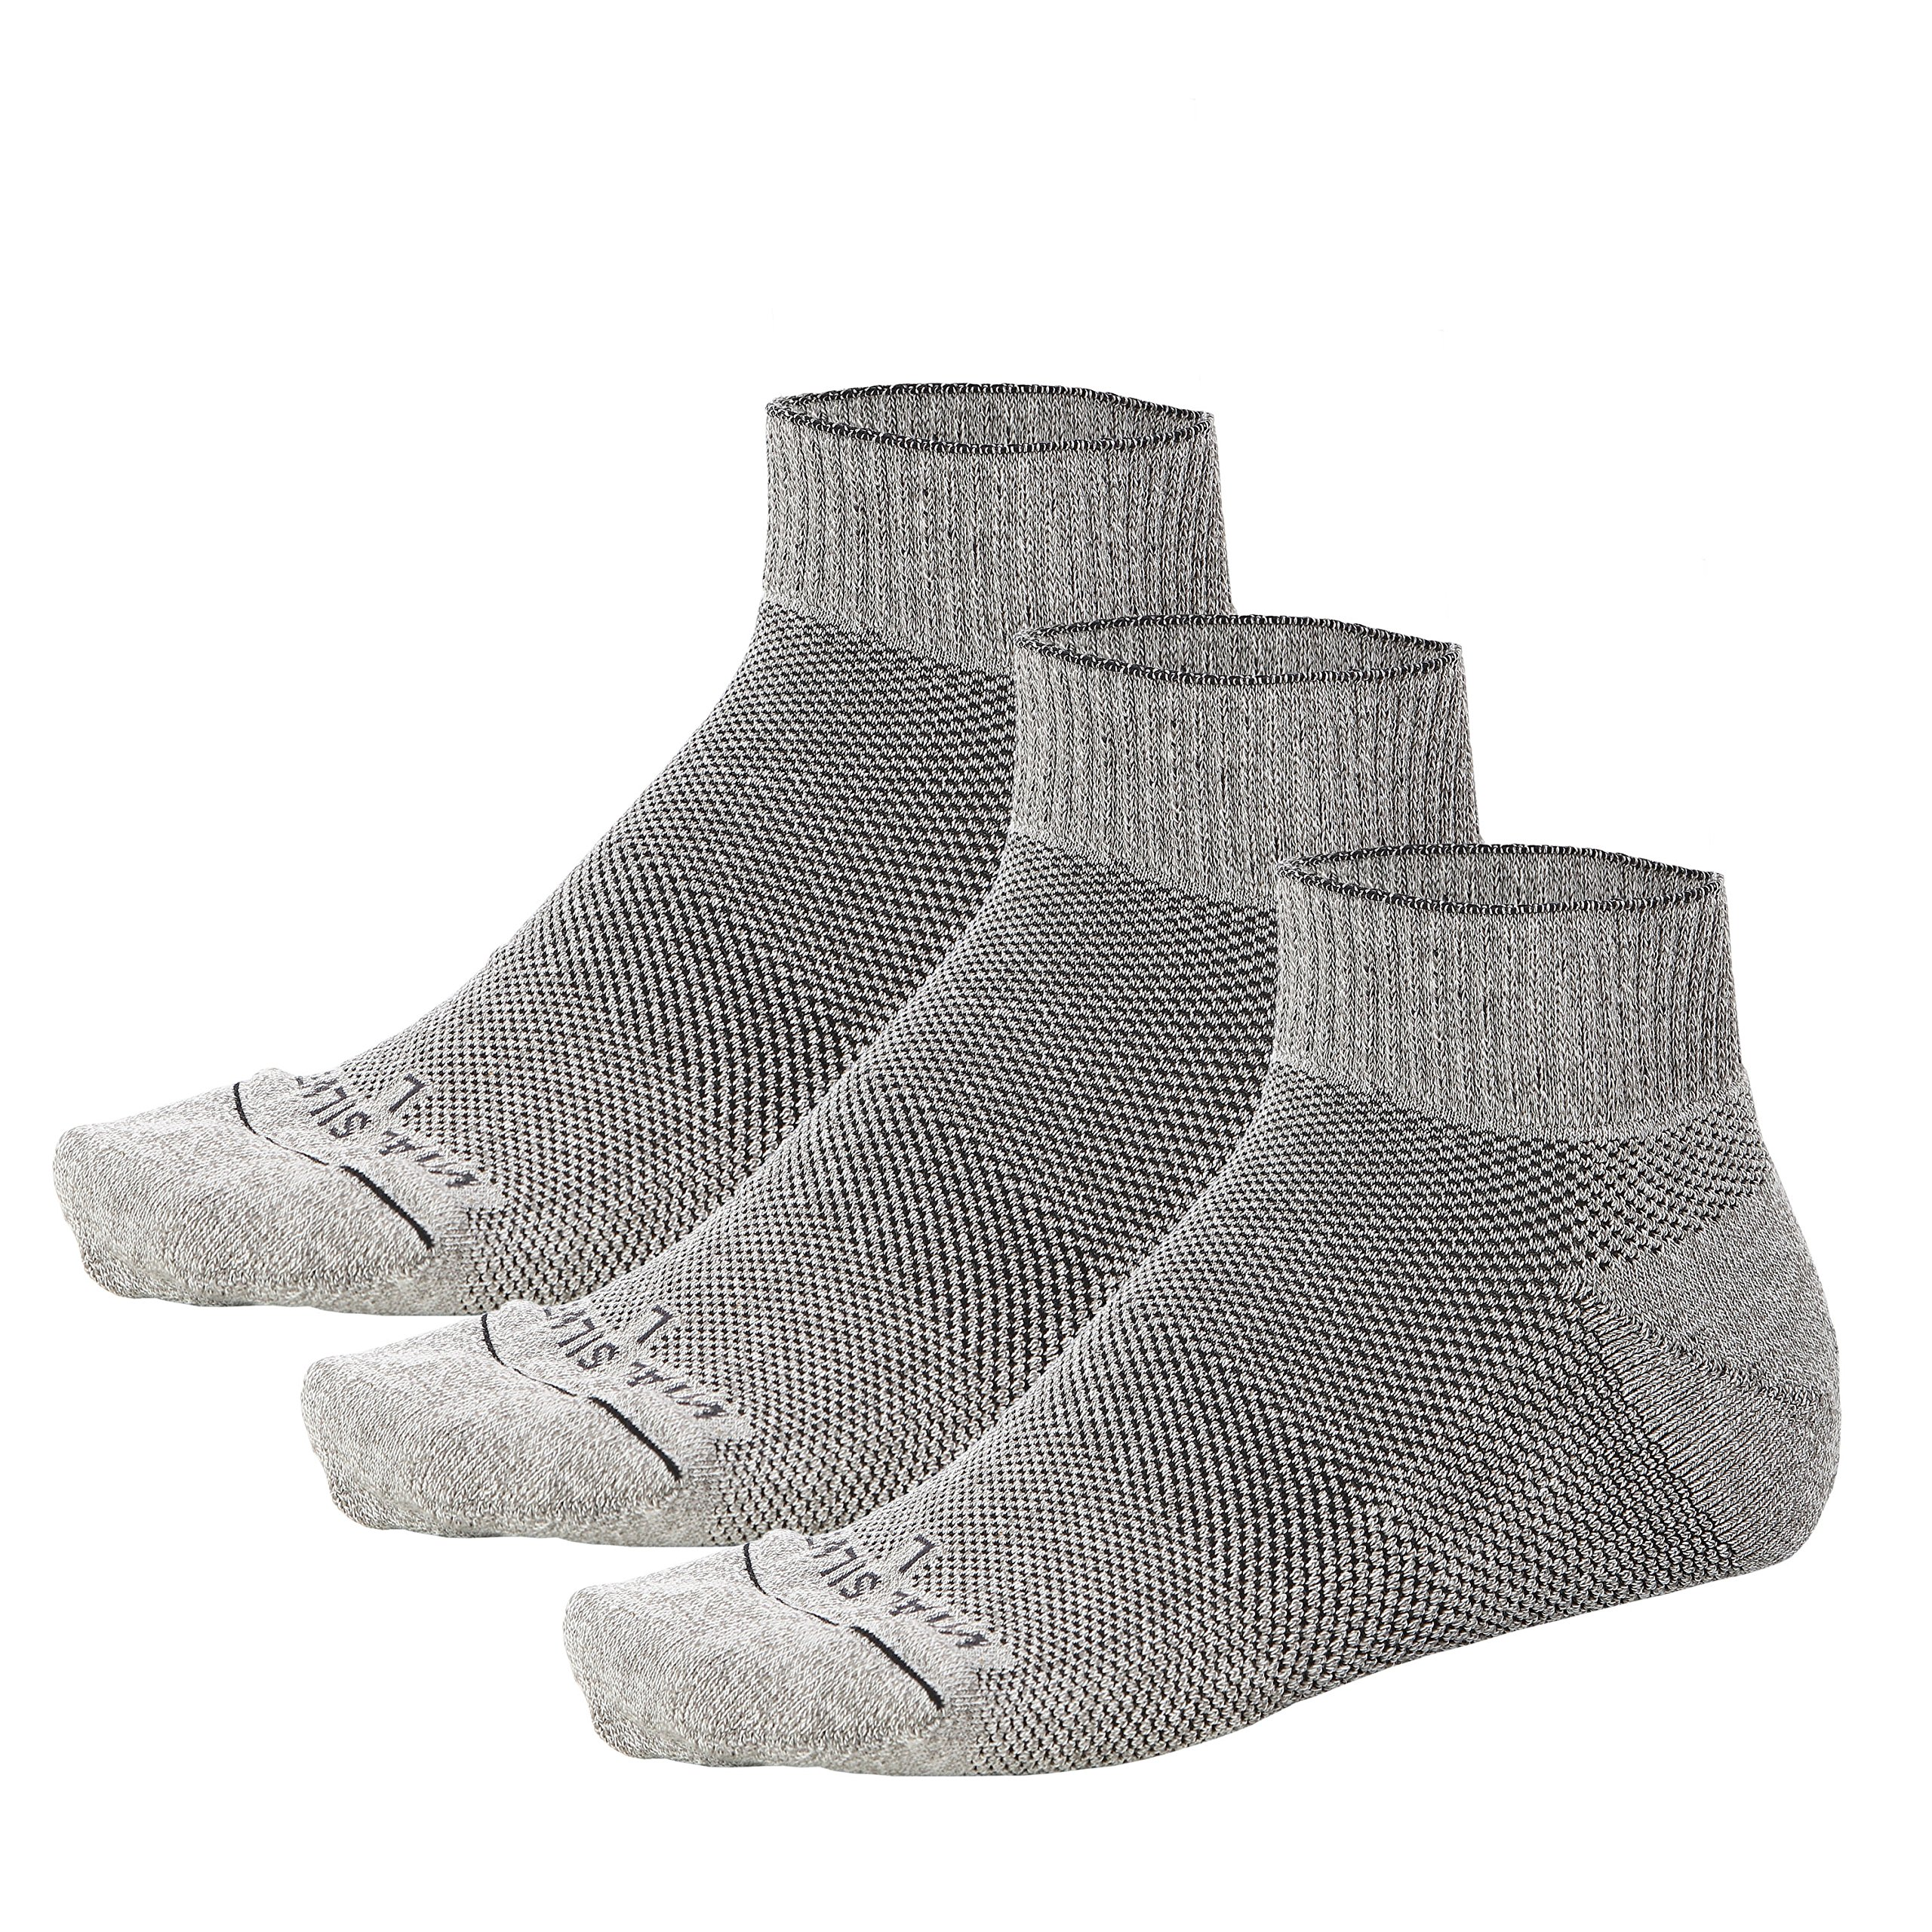 Vital Salveo- Soft Non Binding Seamless Circulation Diabetic Socks- Ankle Short (Large-3 Pairs) by Vital Silver (Image #1)